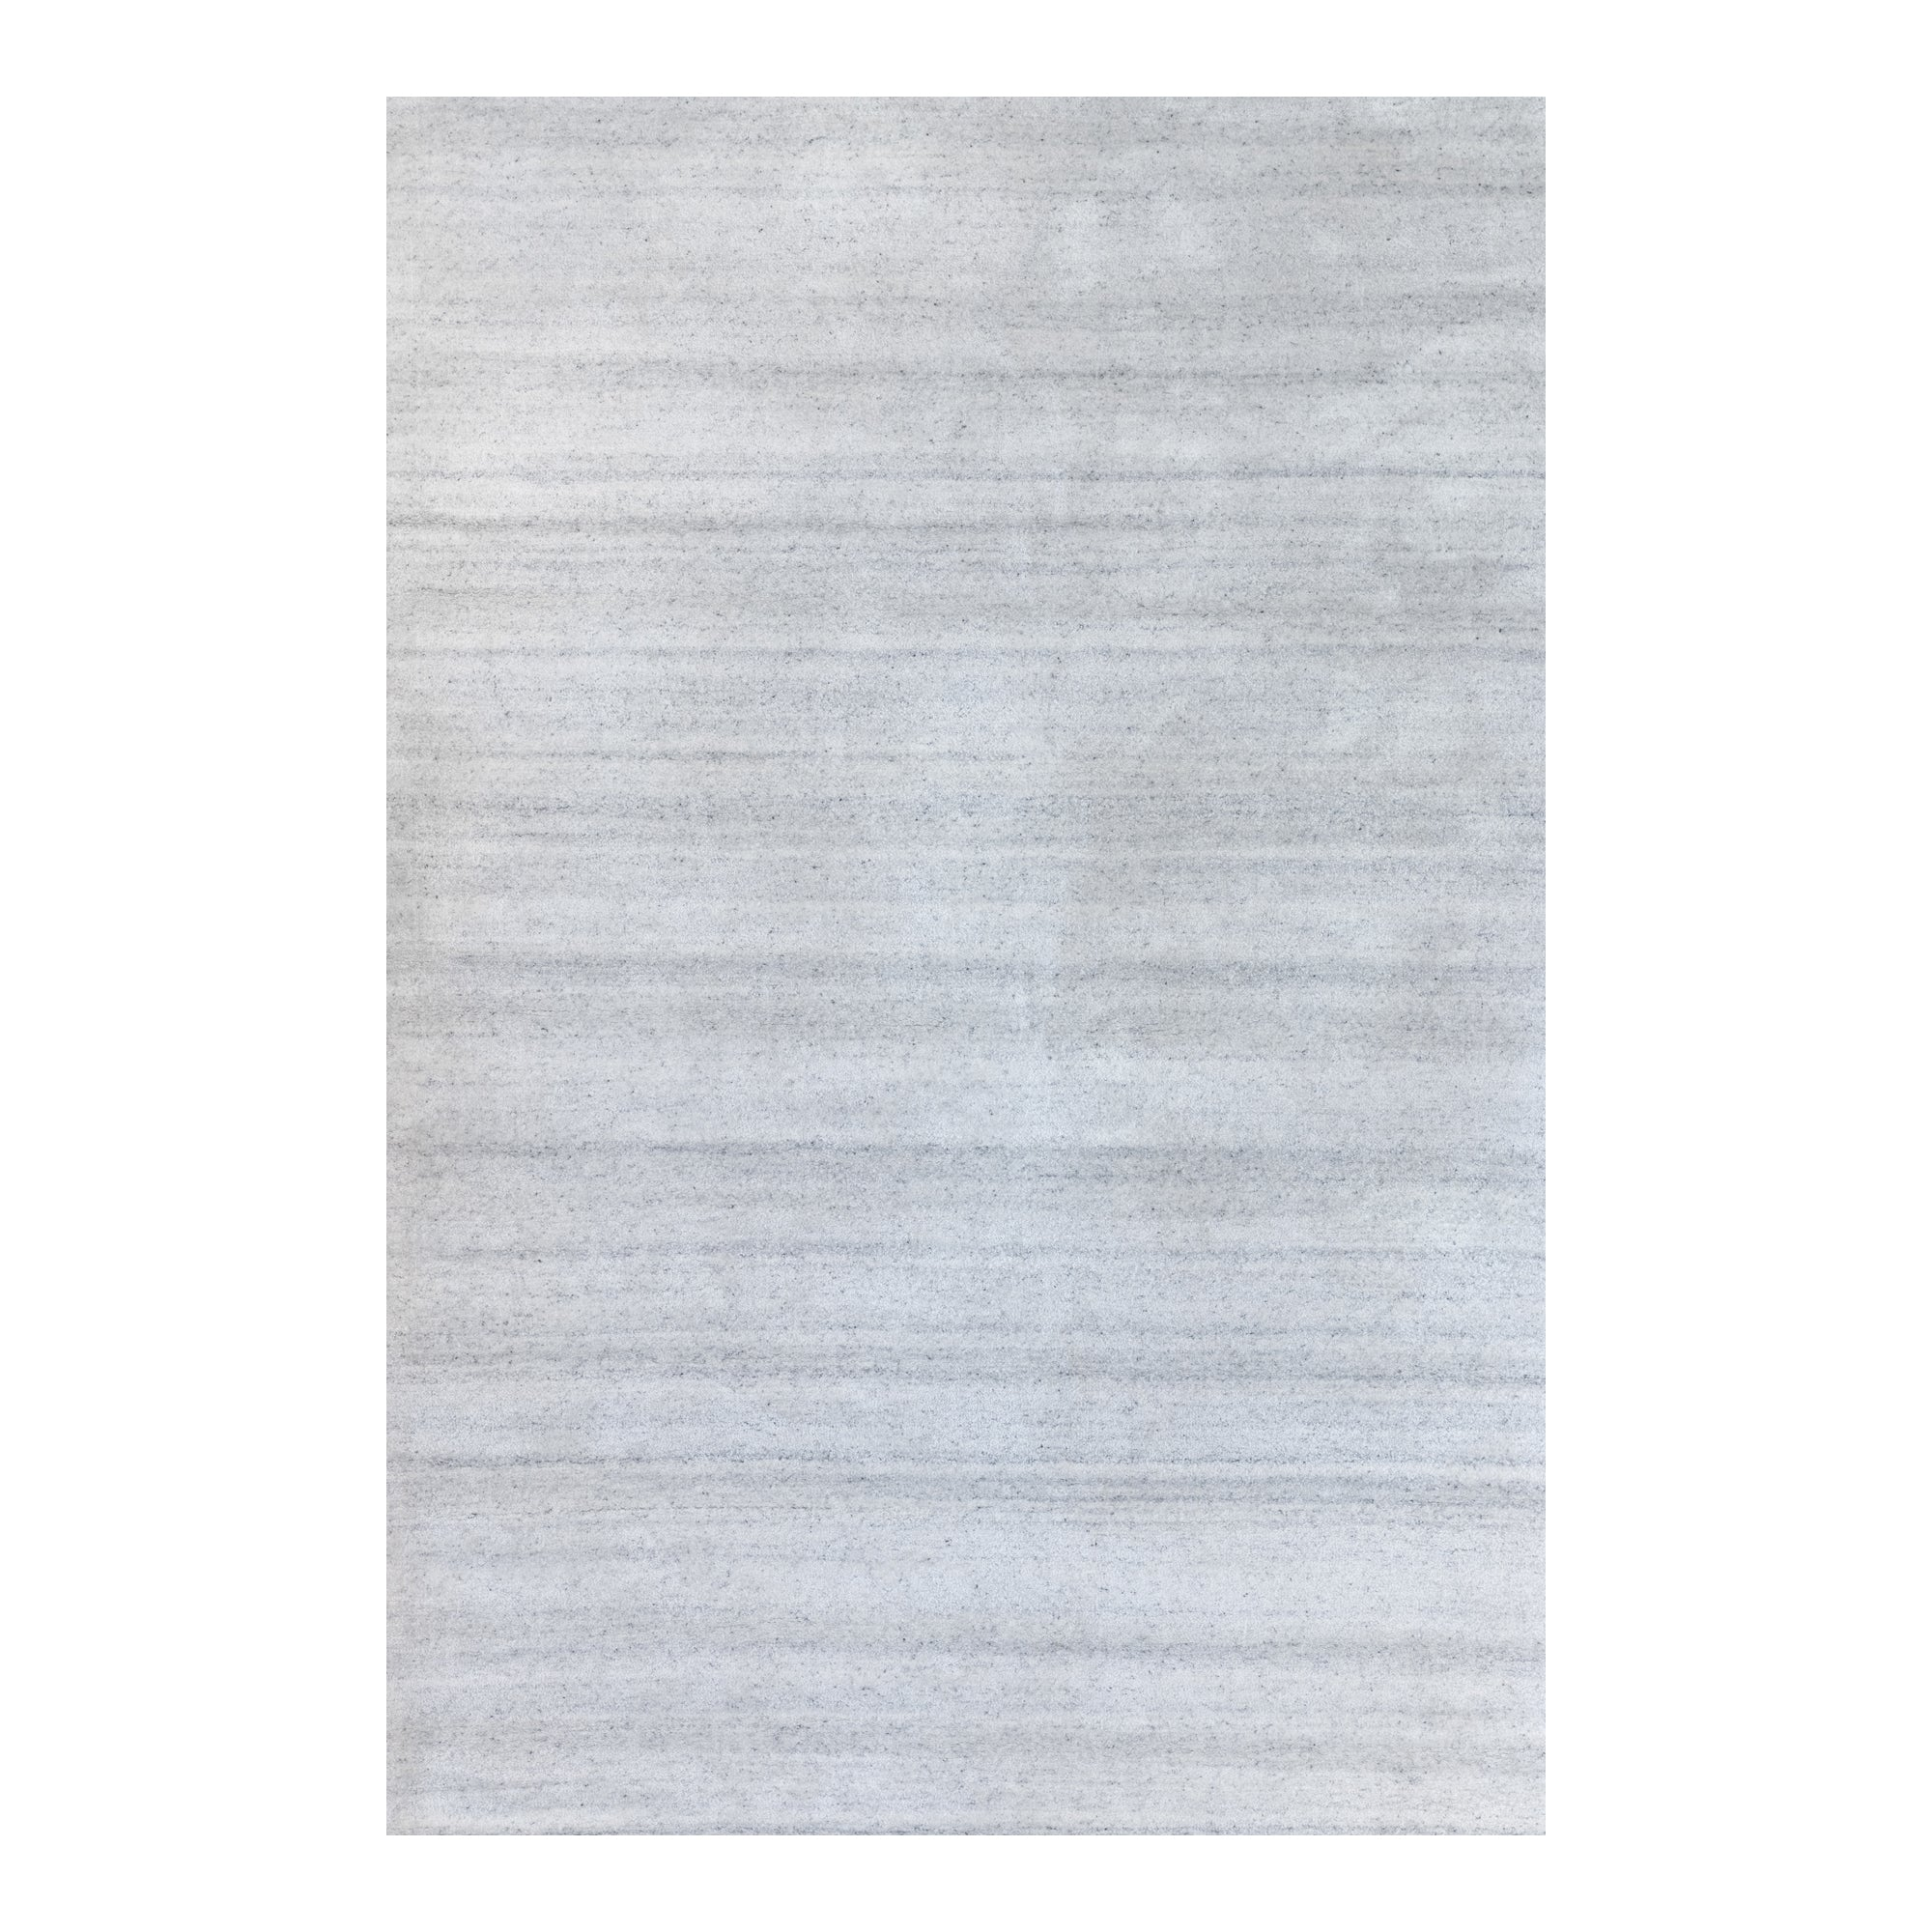 CAYENNE RUG 5X8, White - Tops-Dress